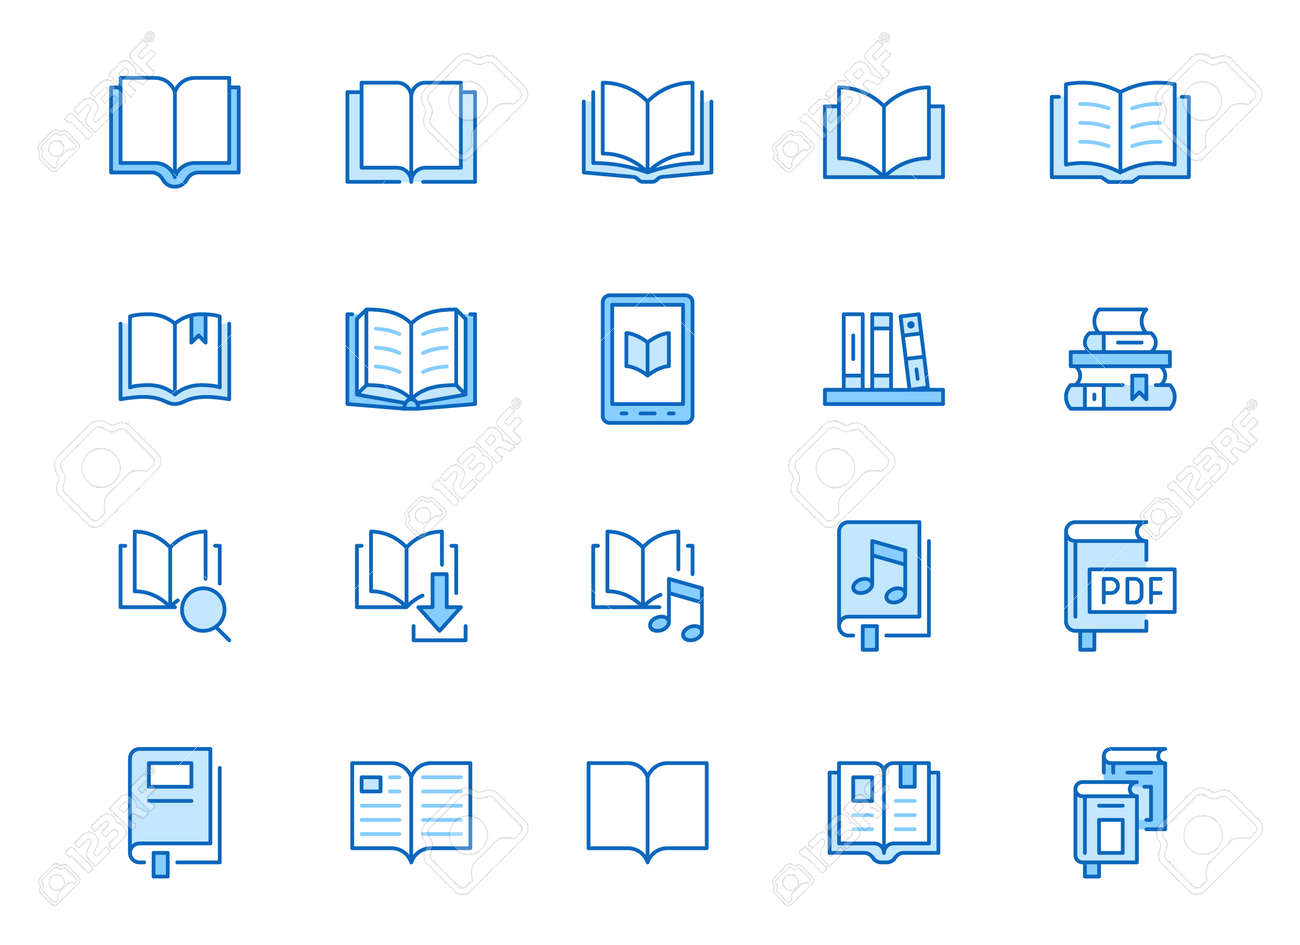 Book line icons set. Open books, dictionary, bible, audio novel, literature education minimal vector illustrations. Simple flat outline sign for web library app. Blue color, Editable Stroke. - 159869995